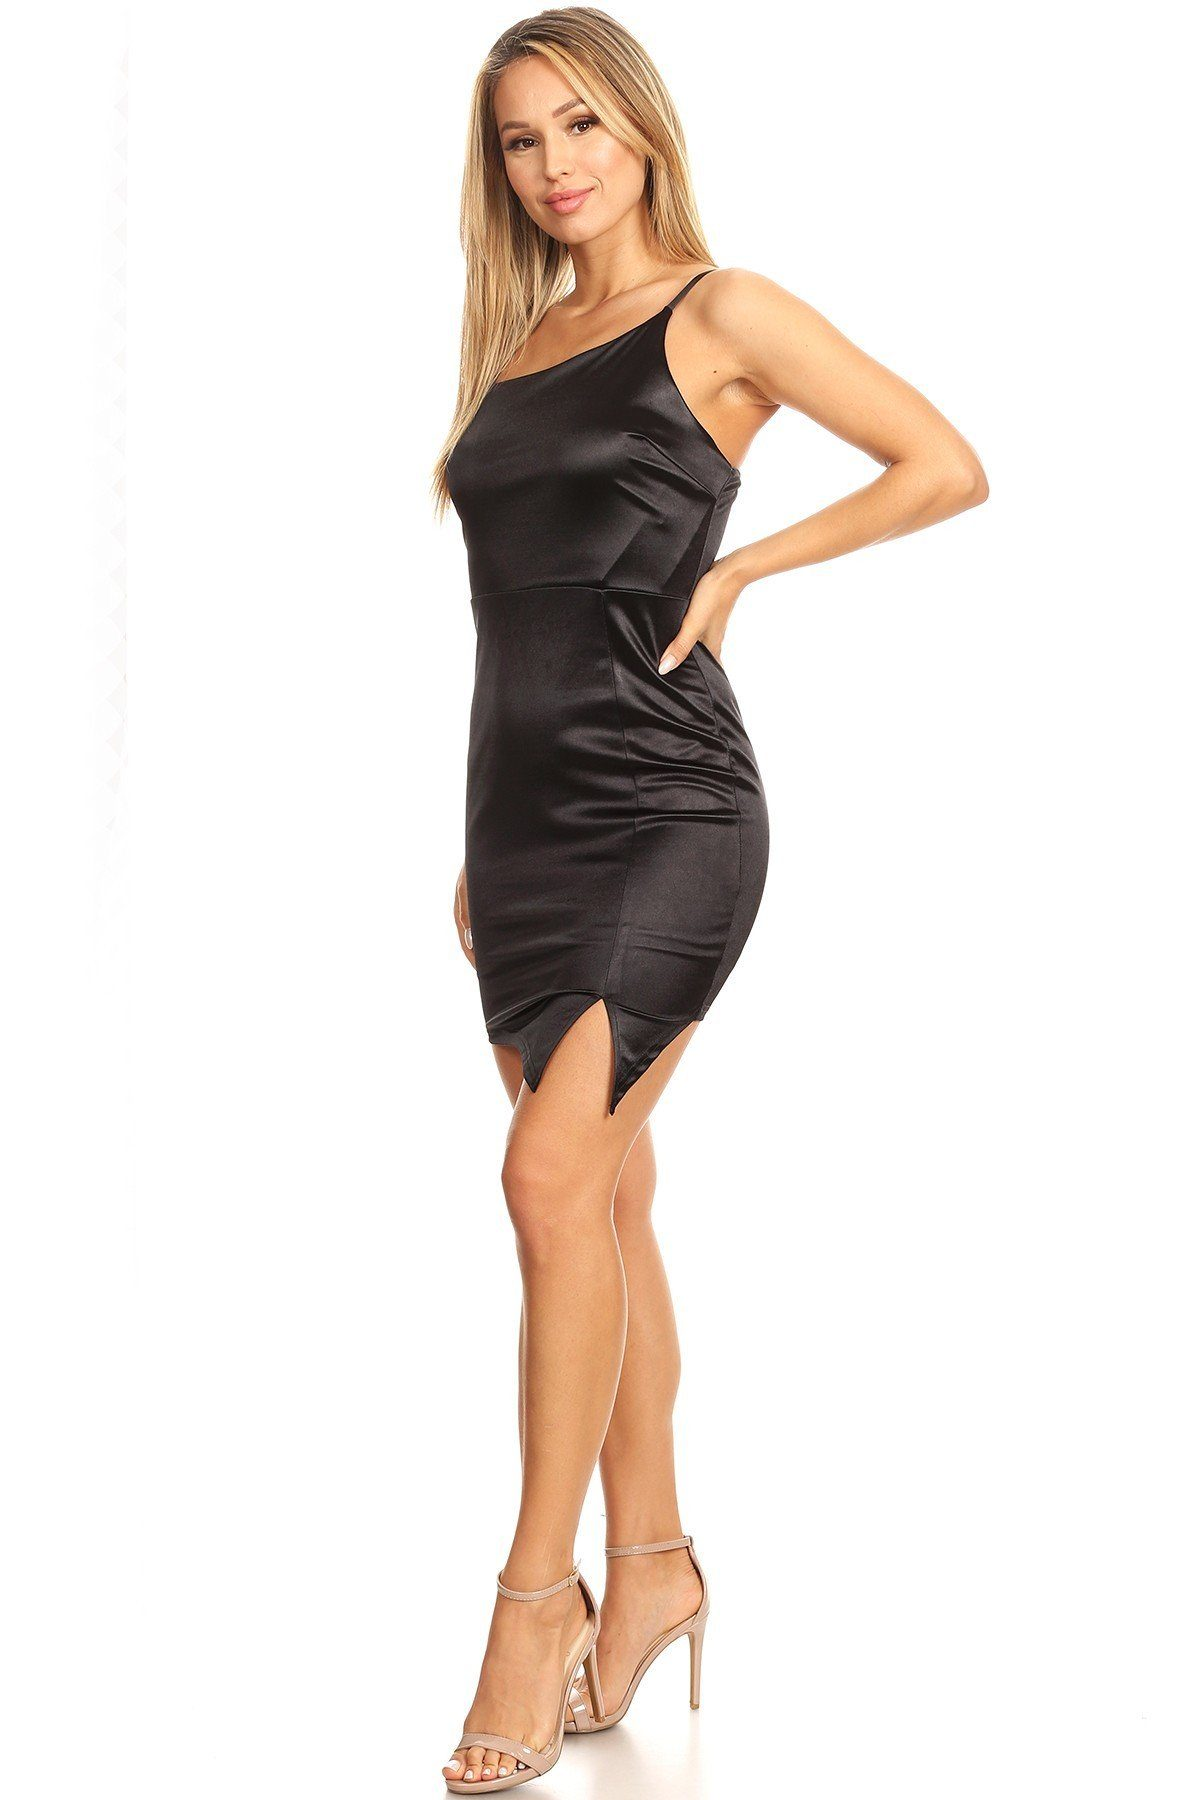 slaythedaybydcole,Solid Mini Dress With Bodycon Fit, Side Slit, And Spaghetti Straps,Slay The Day By D Cole,